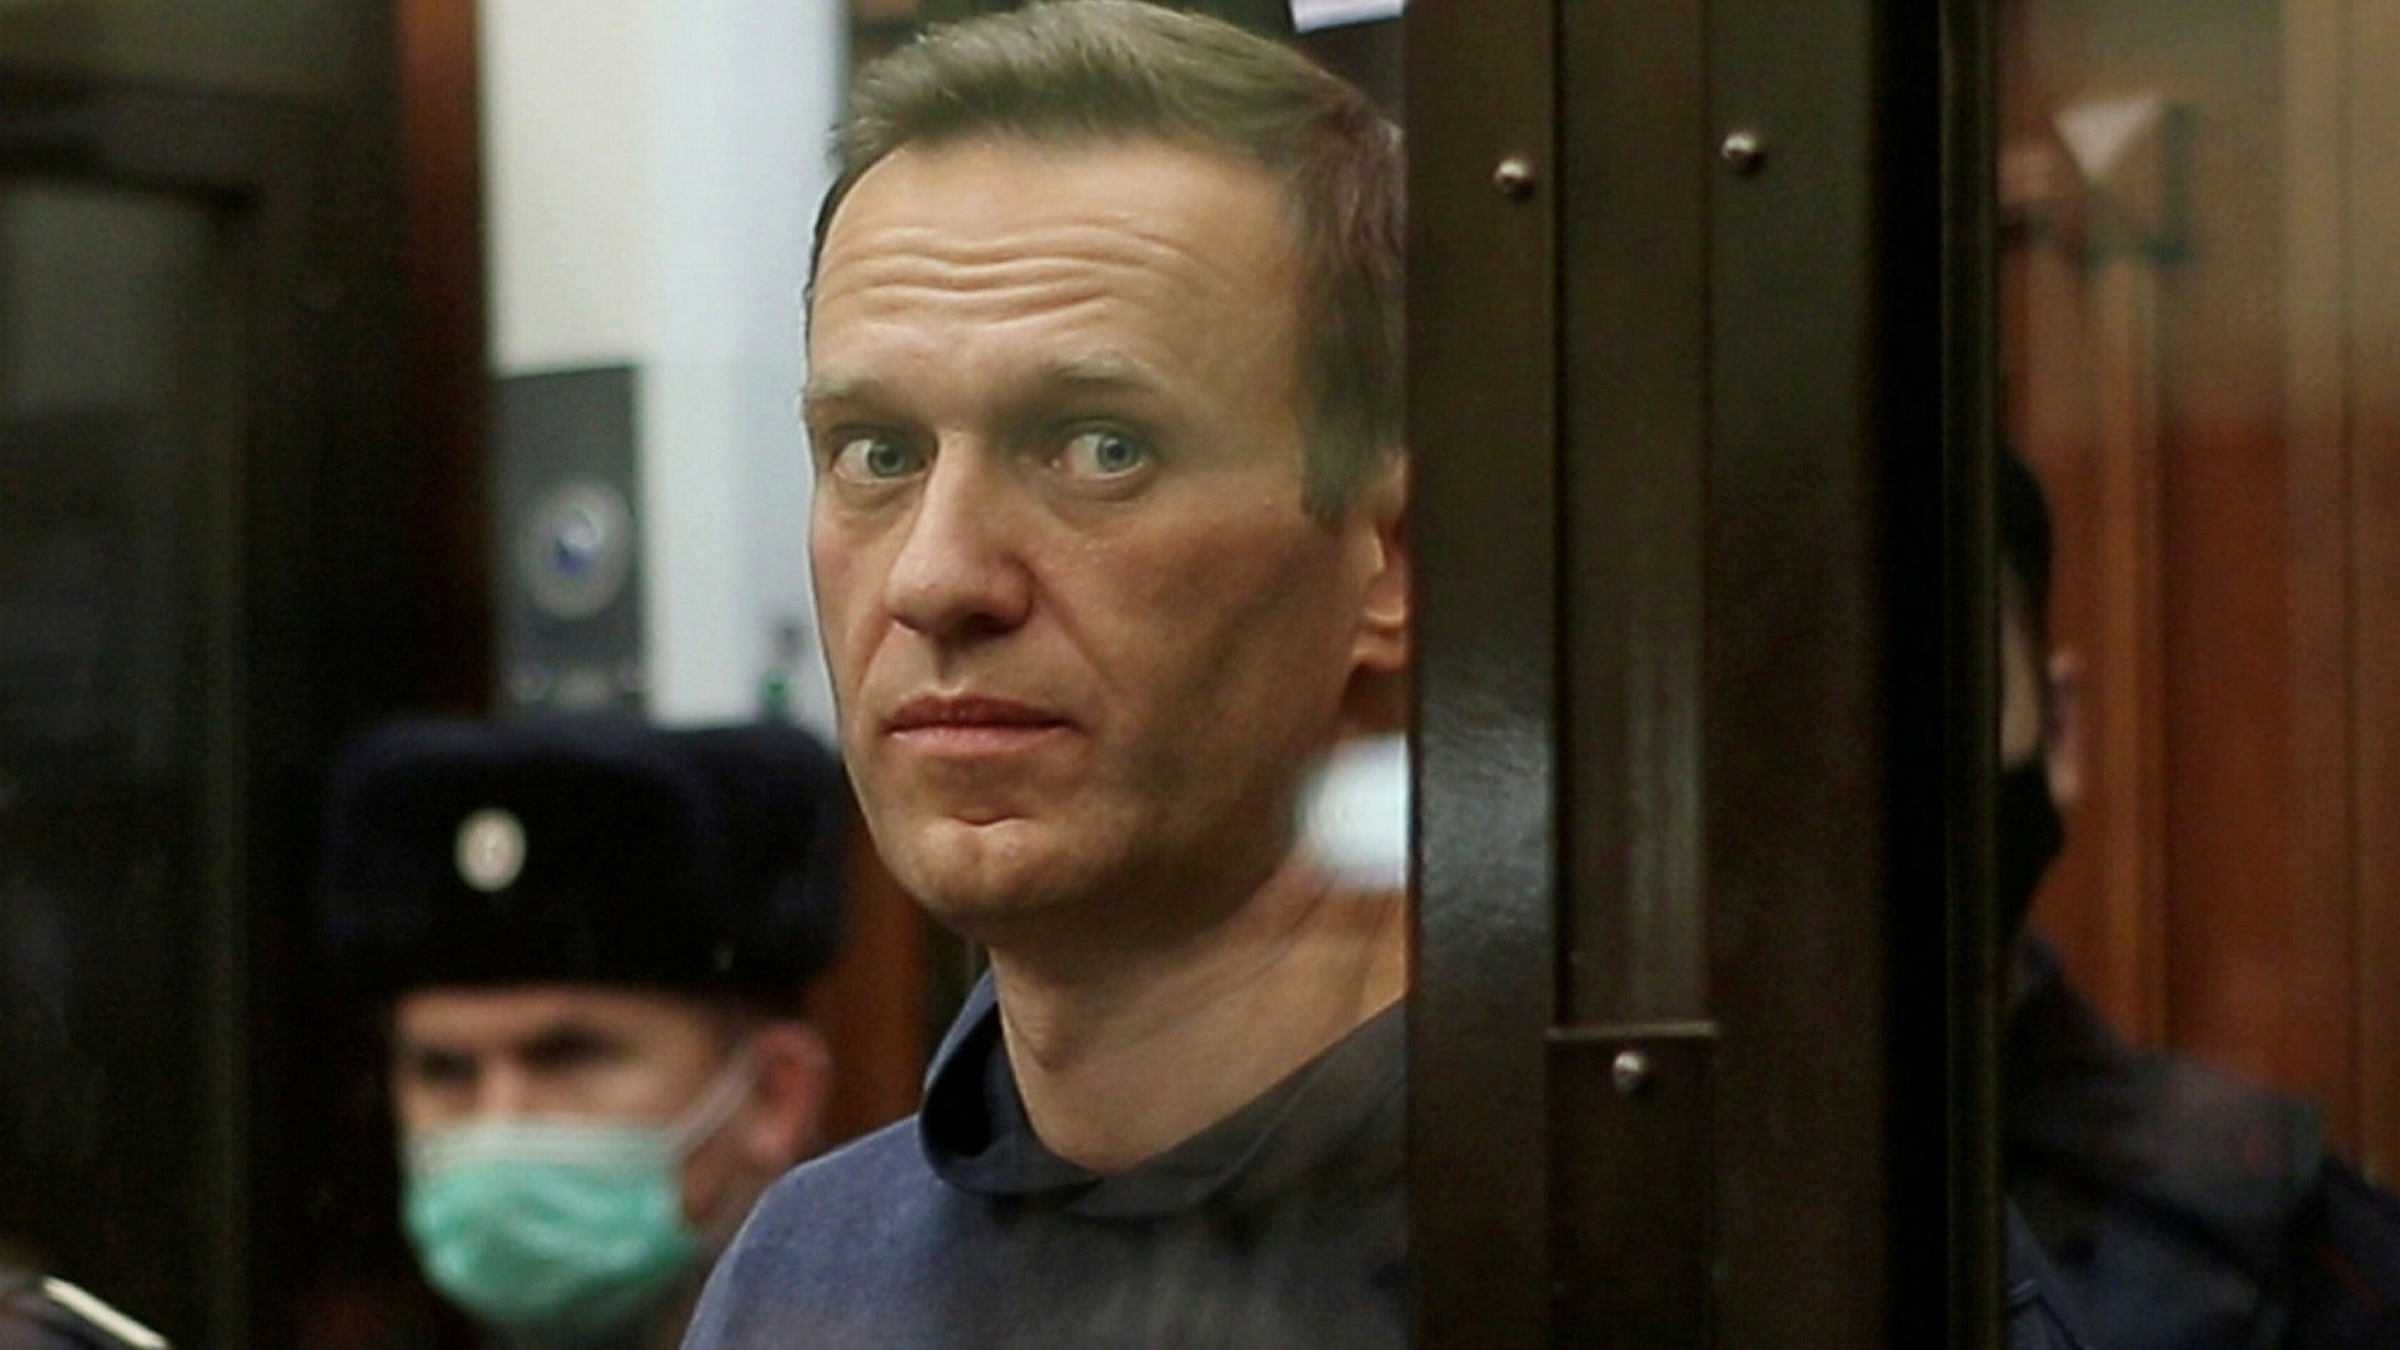 China Slams US/EU Over Interfering In Russia's Internal Affairs Over Alexey Navalny